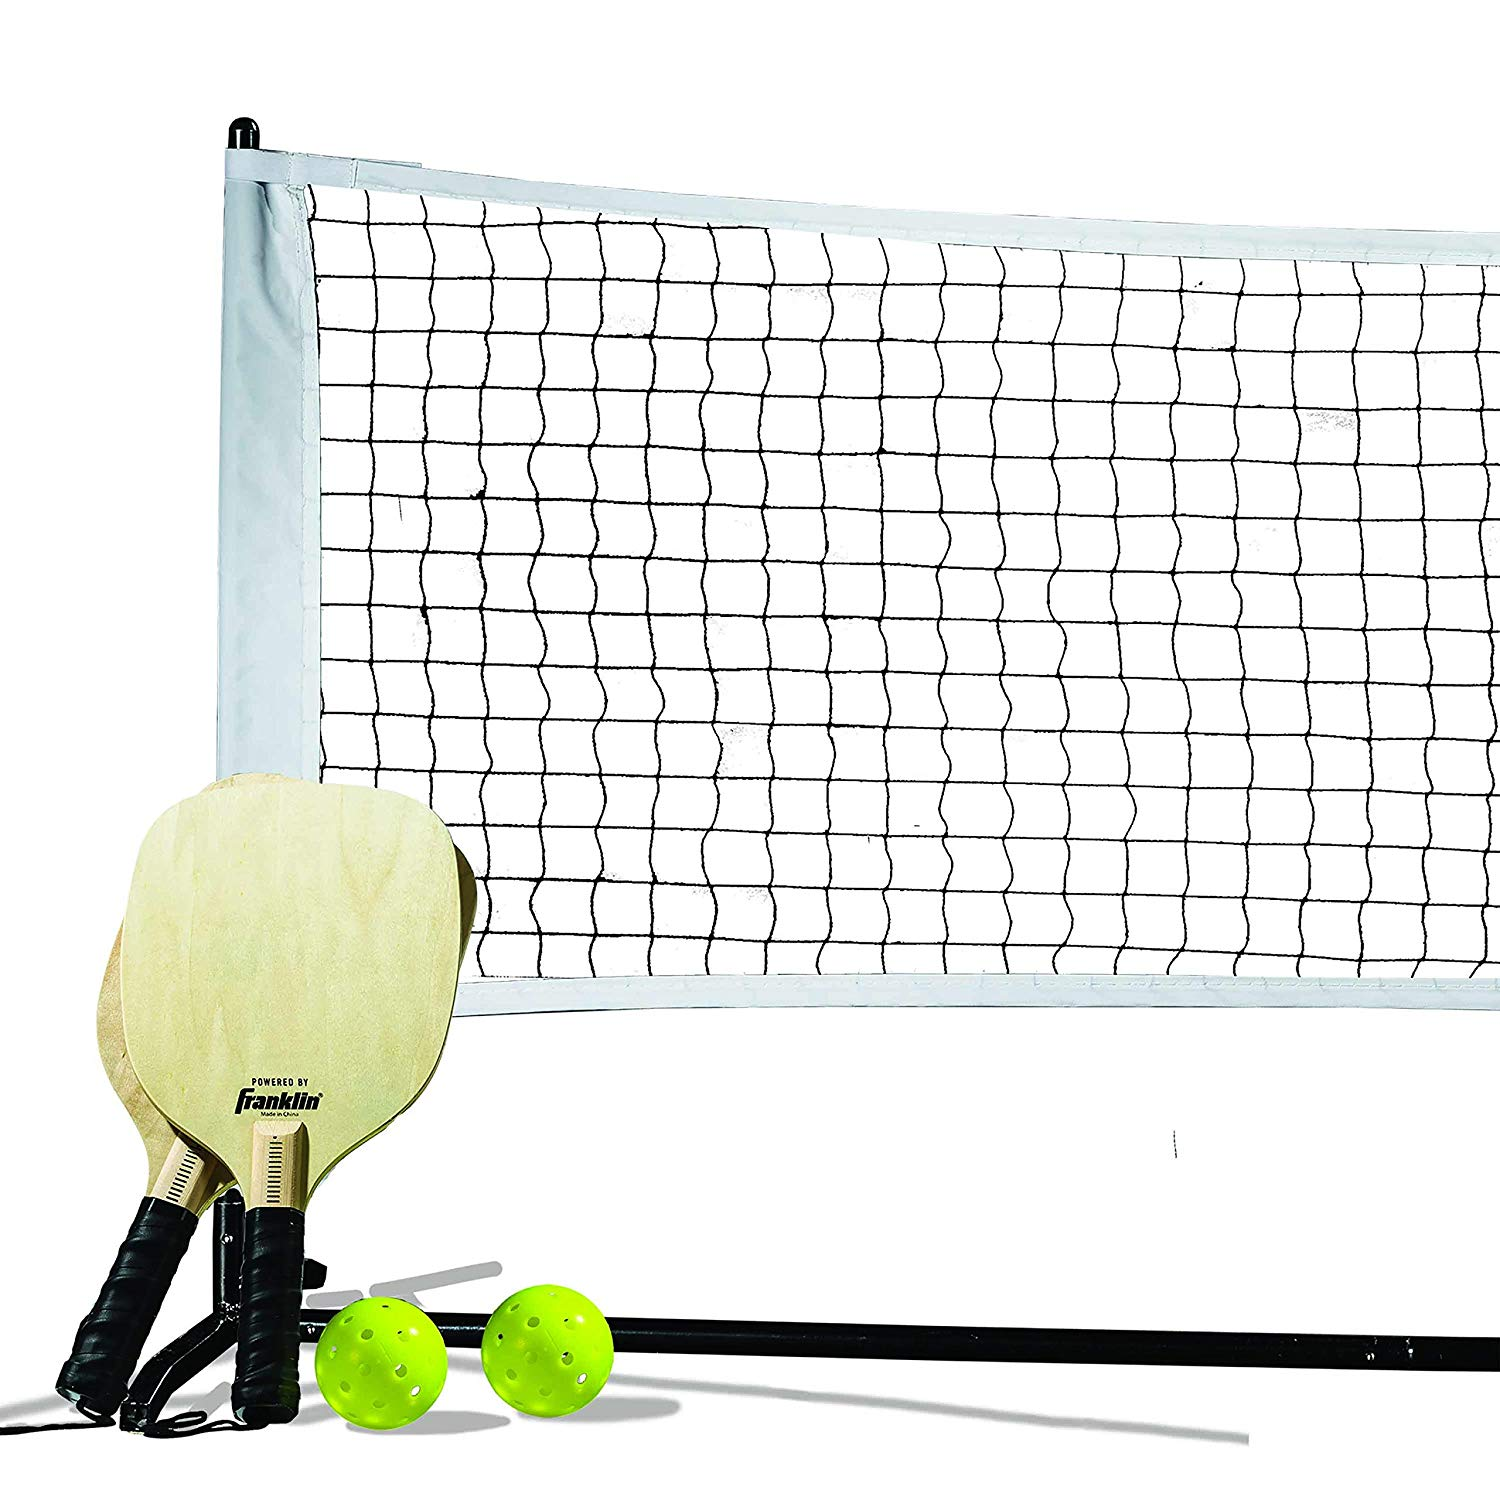 Franklin Sports Pickleball Starter Set - Official Starter Set of The US Open - Includes Net, Paddles (2), x-40 Pickleball, One Size